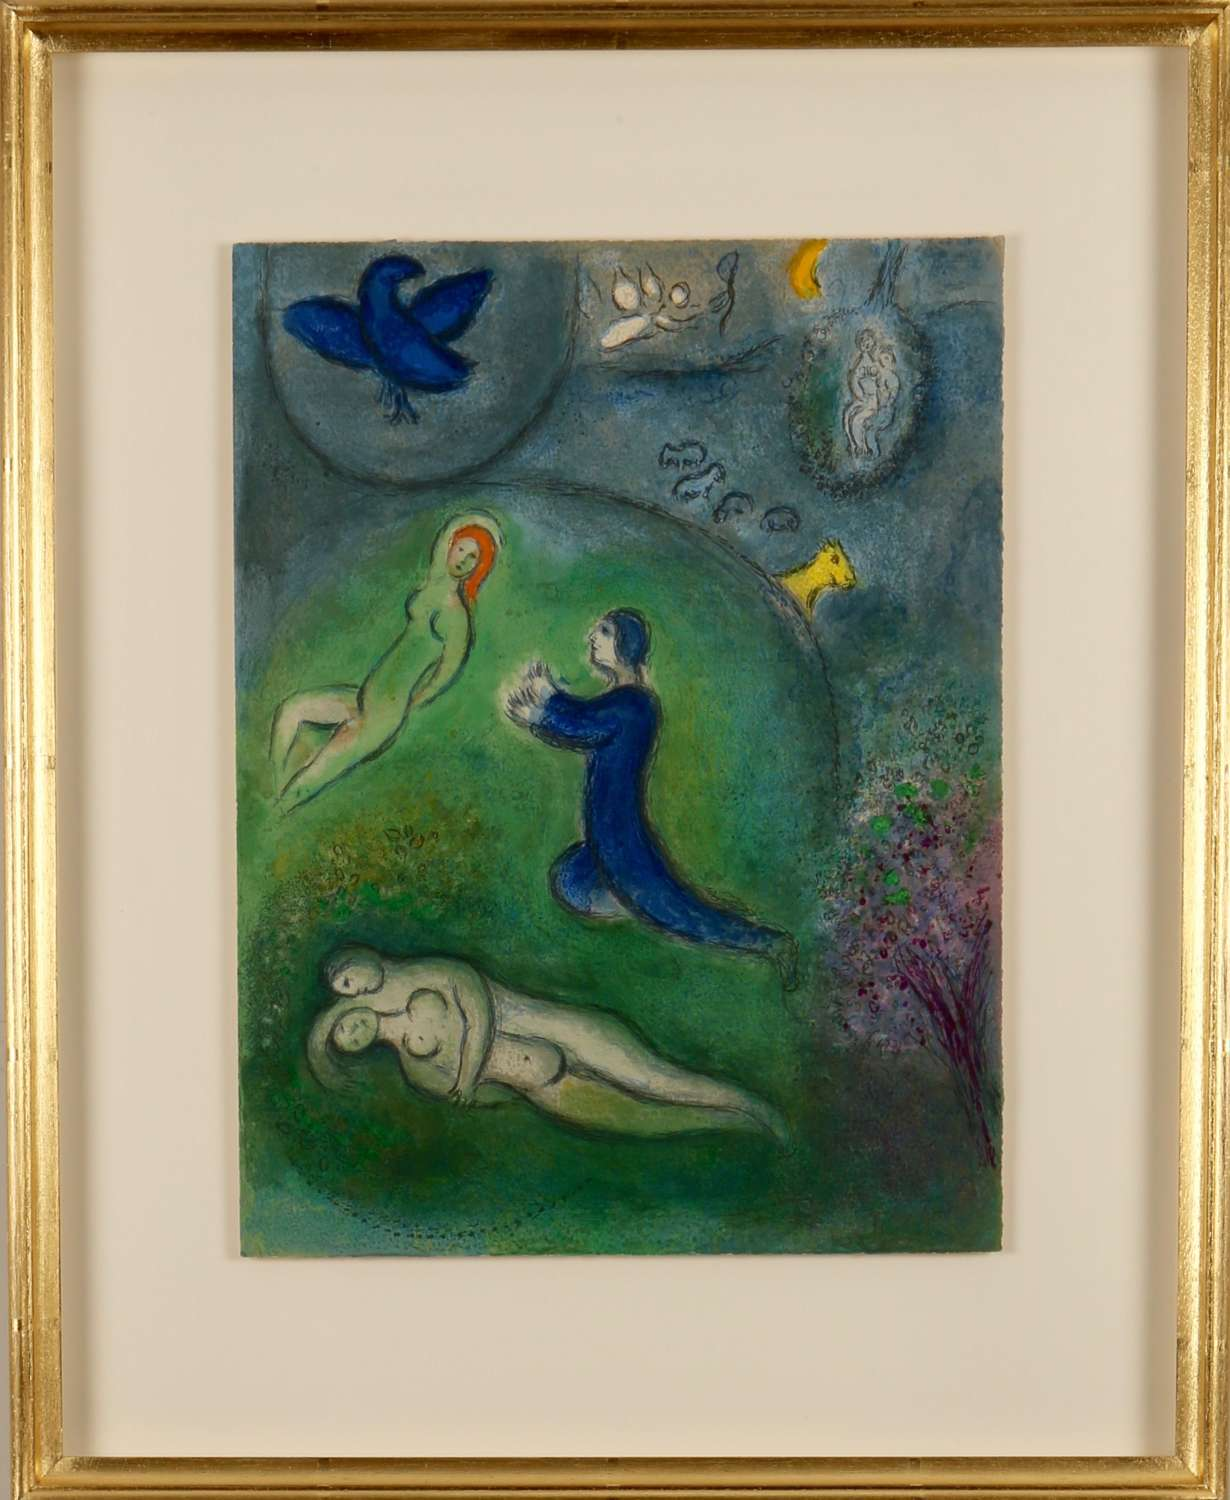 Marc Chagall: 'Daphnis and Chloé'. Original colour lithograph, 1961.